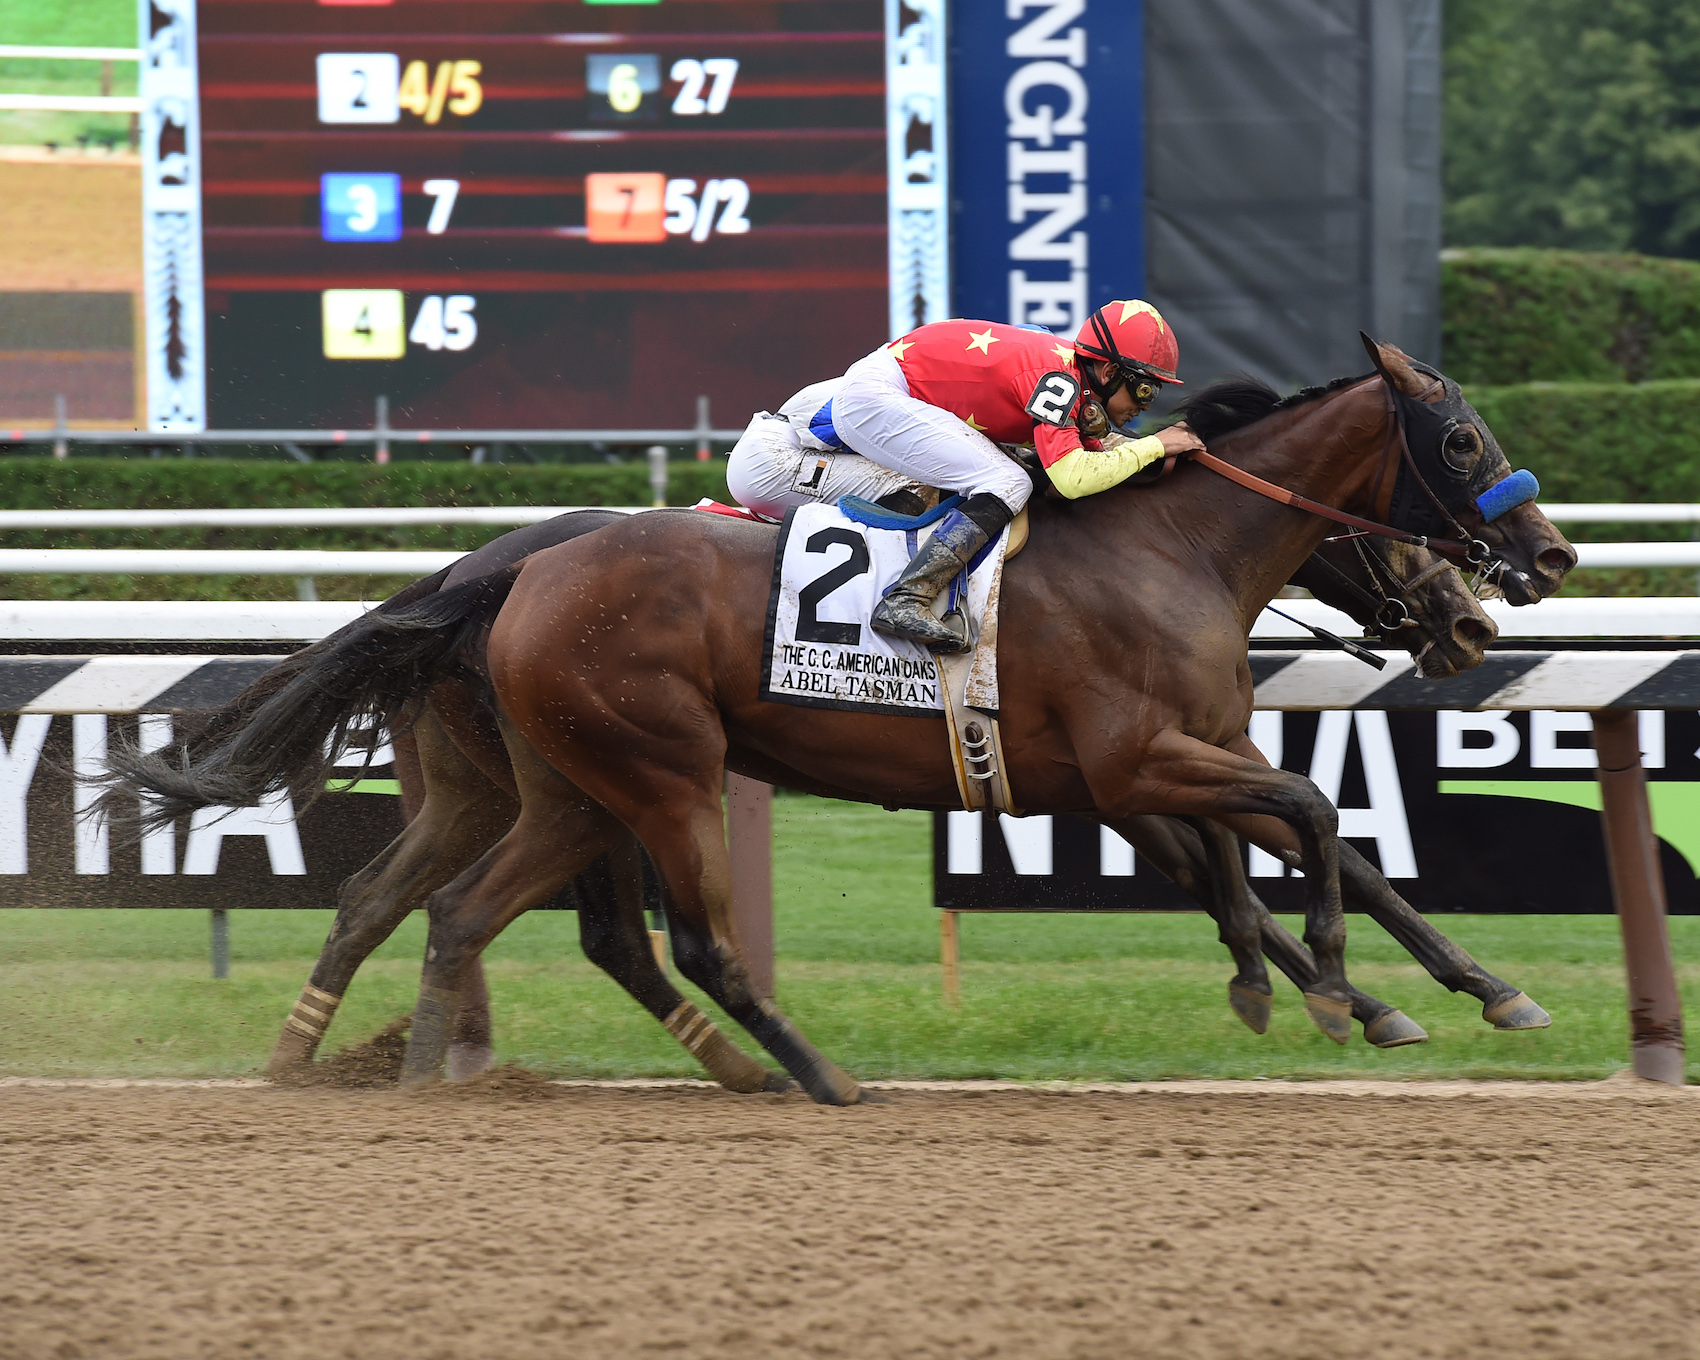 Abel Tasman wins the Coaching Club American Oaks at Saratoga in July by a head from Elate. Photo: NYRA.com